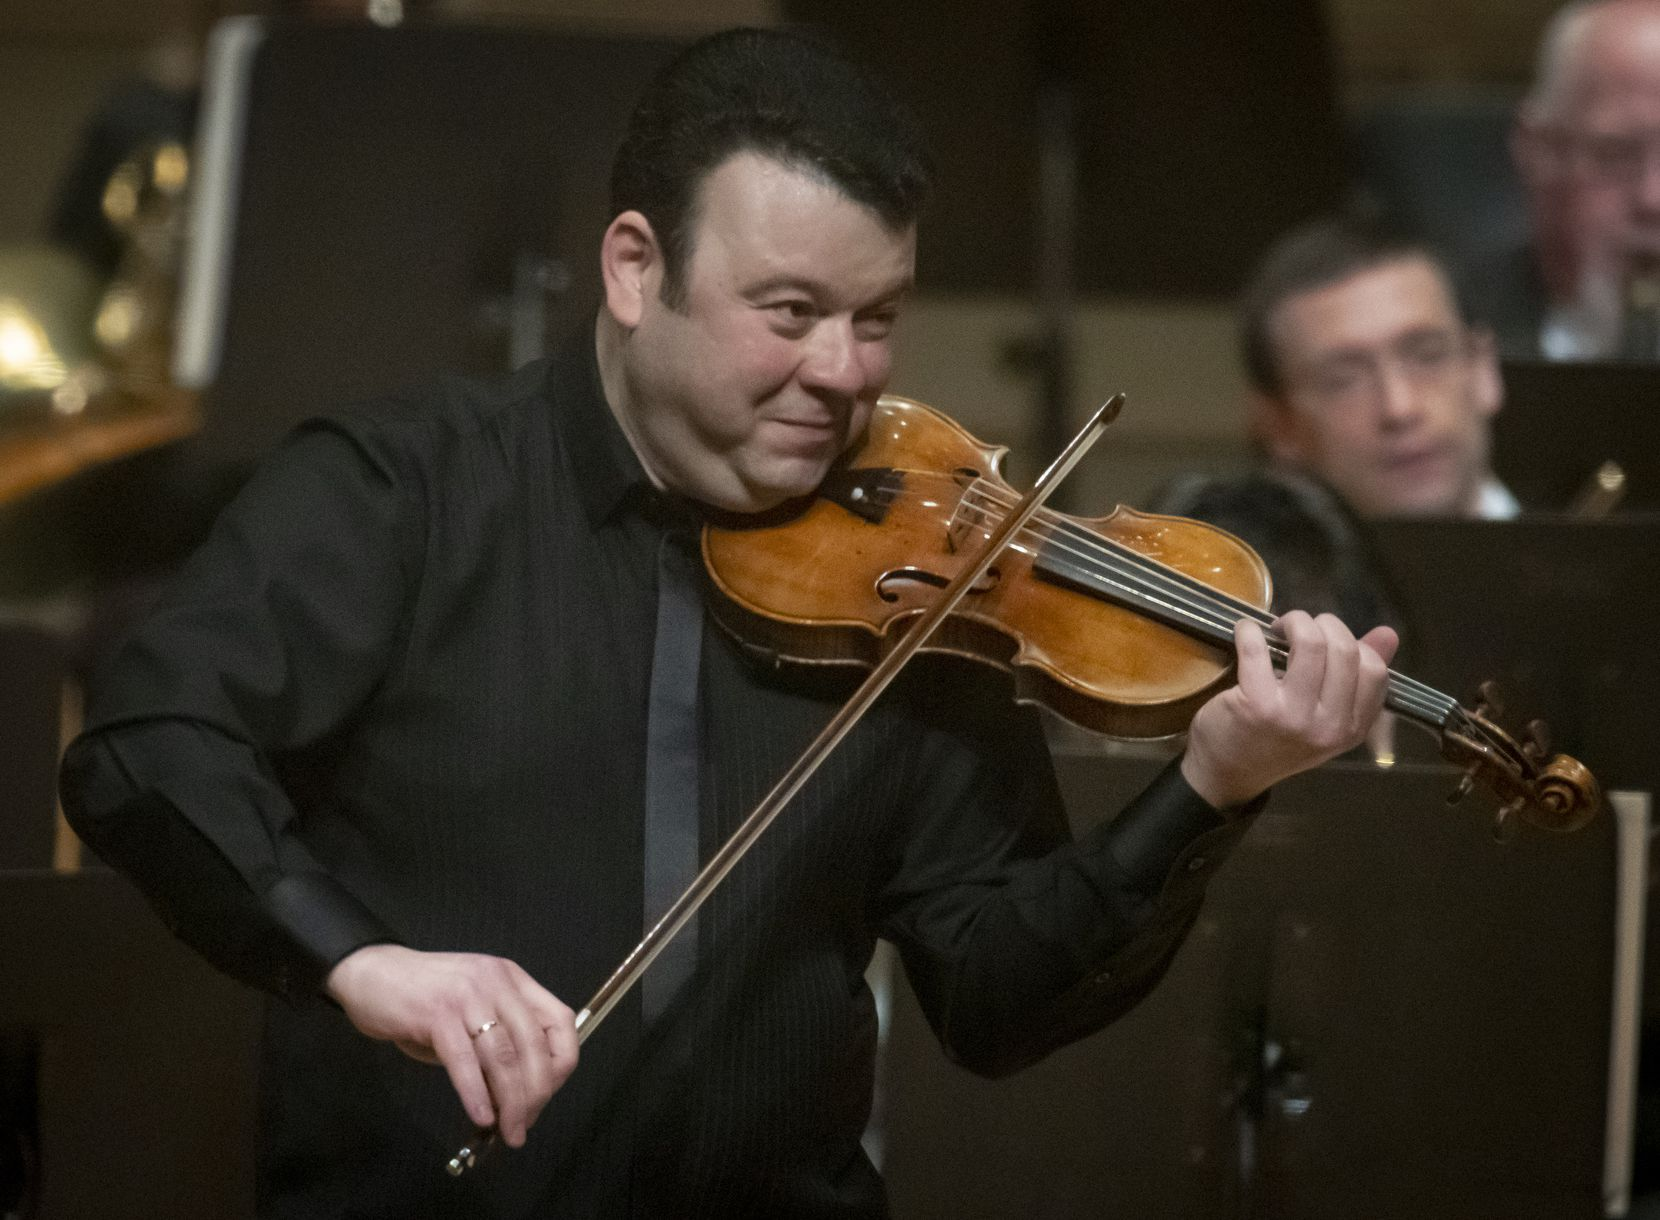 Violinist Vadim Gluzman performs Prokofiev's Violin Concerto No. 2 with the Dallas Symphony Orchestra at the Meyerson Symphony Center on May 28 in Dallas.